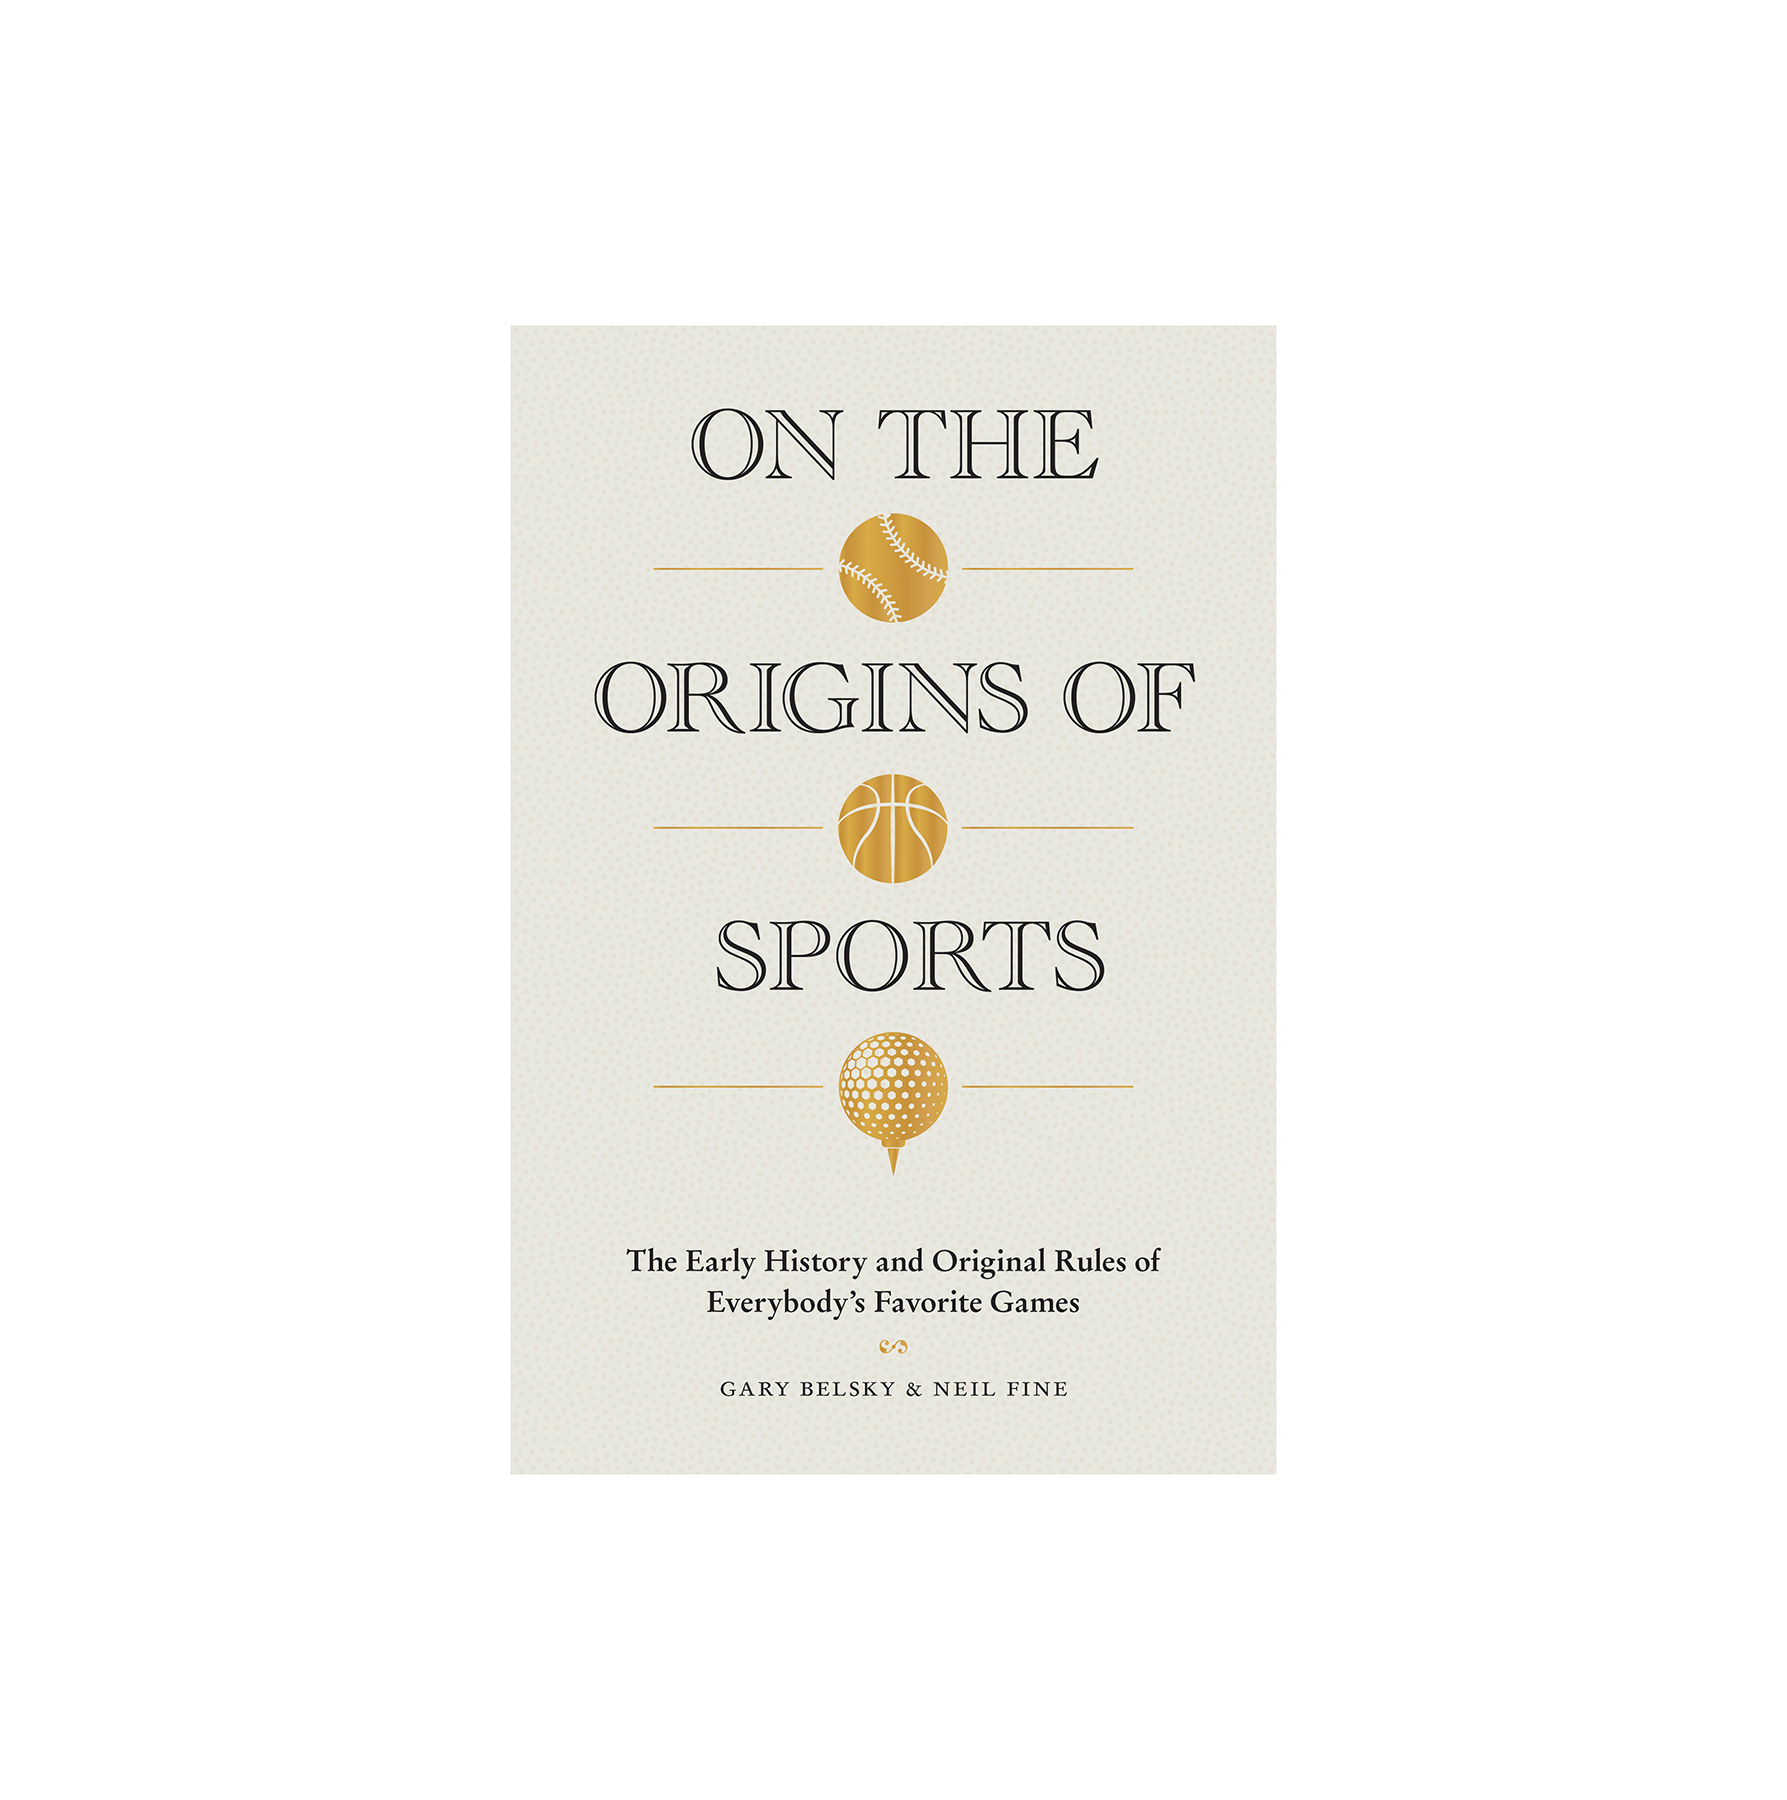 On the Origins of Sports: The Early History and Original Rules of Everybody's Favorite Games, by Gary Belsky and Neil Fine